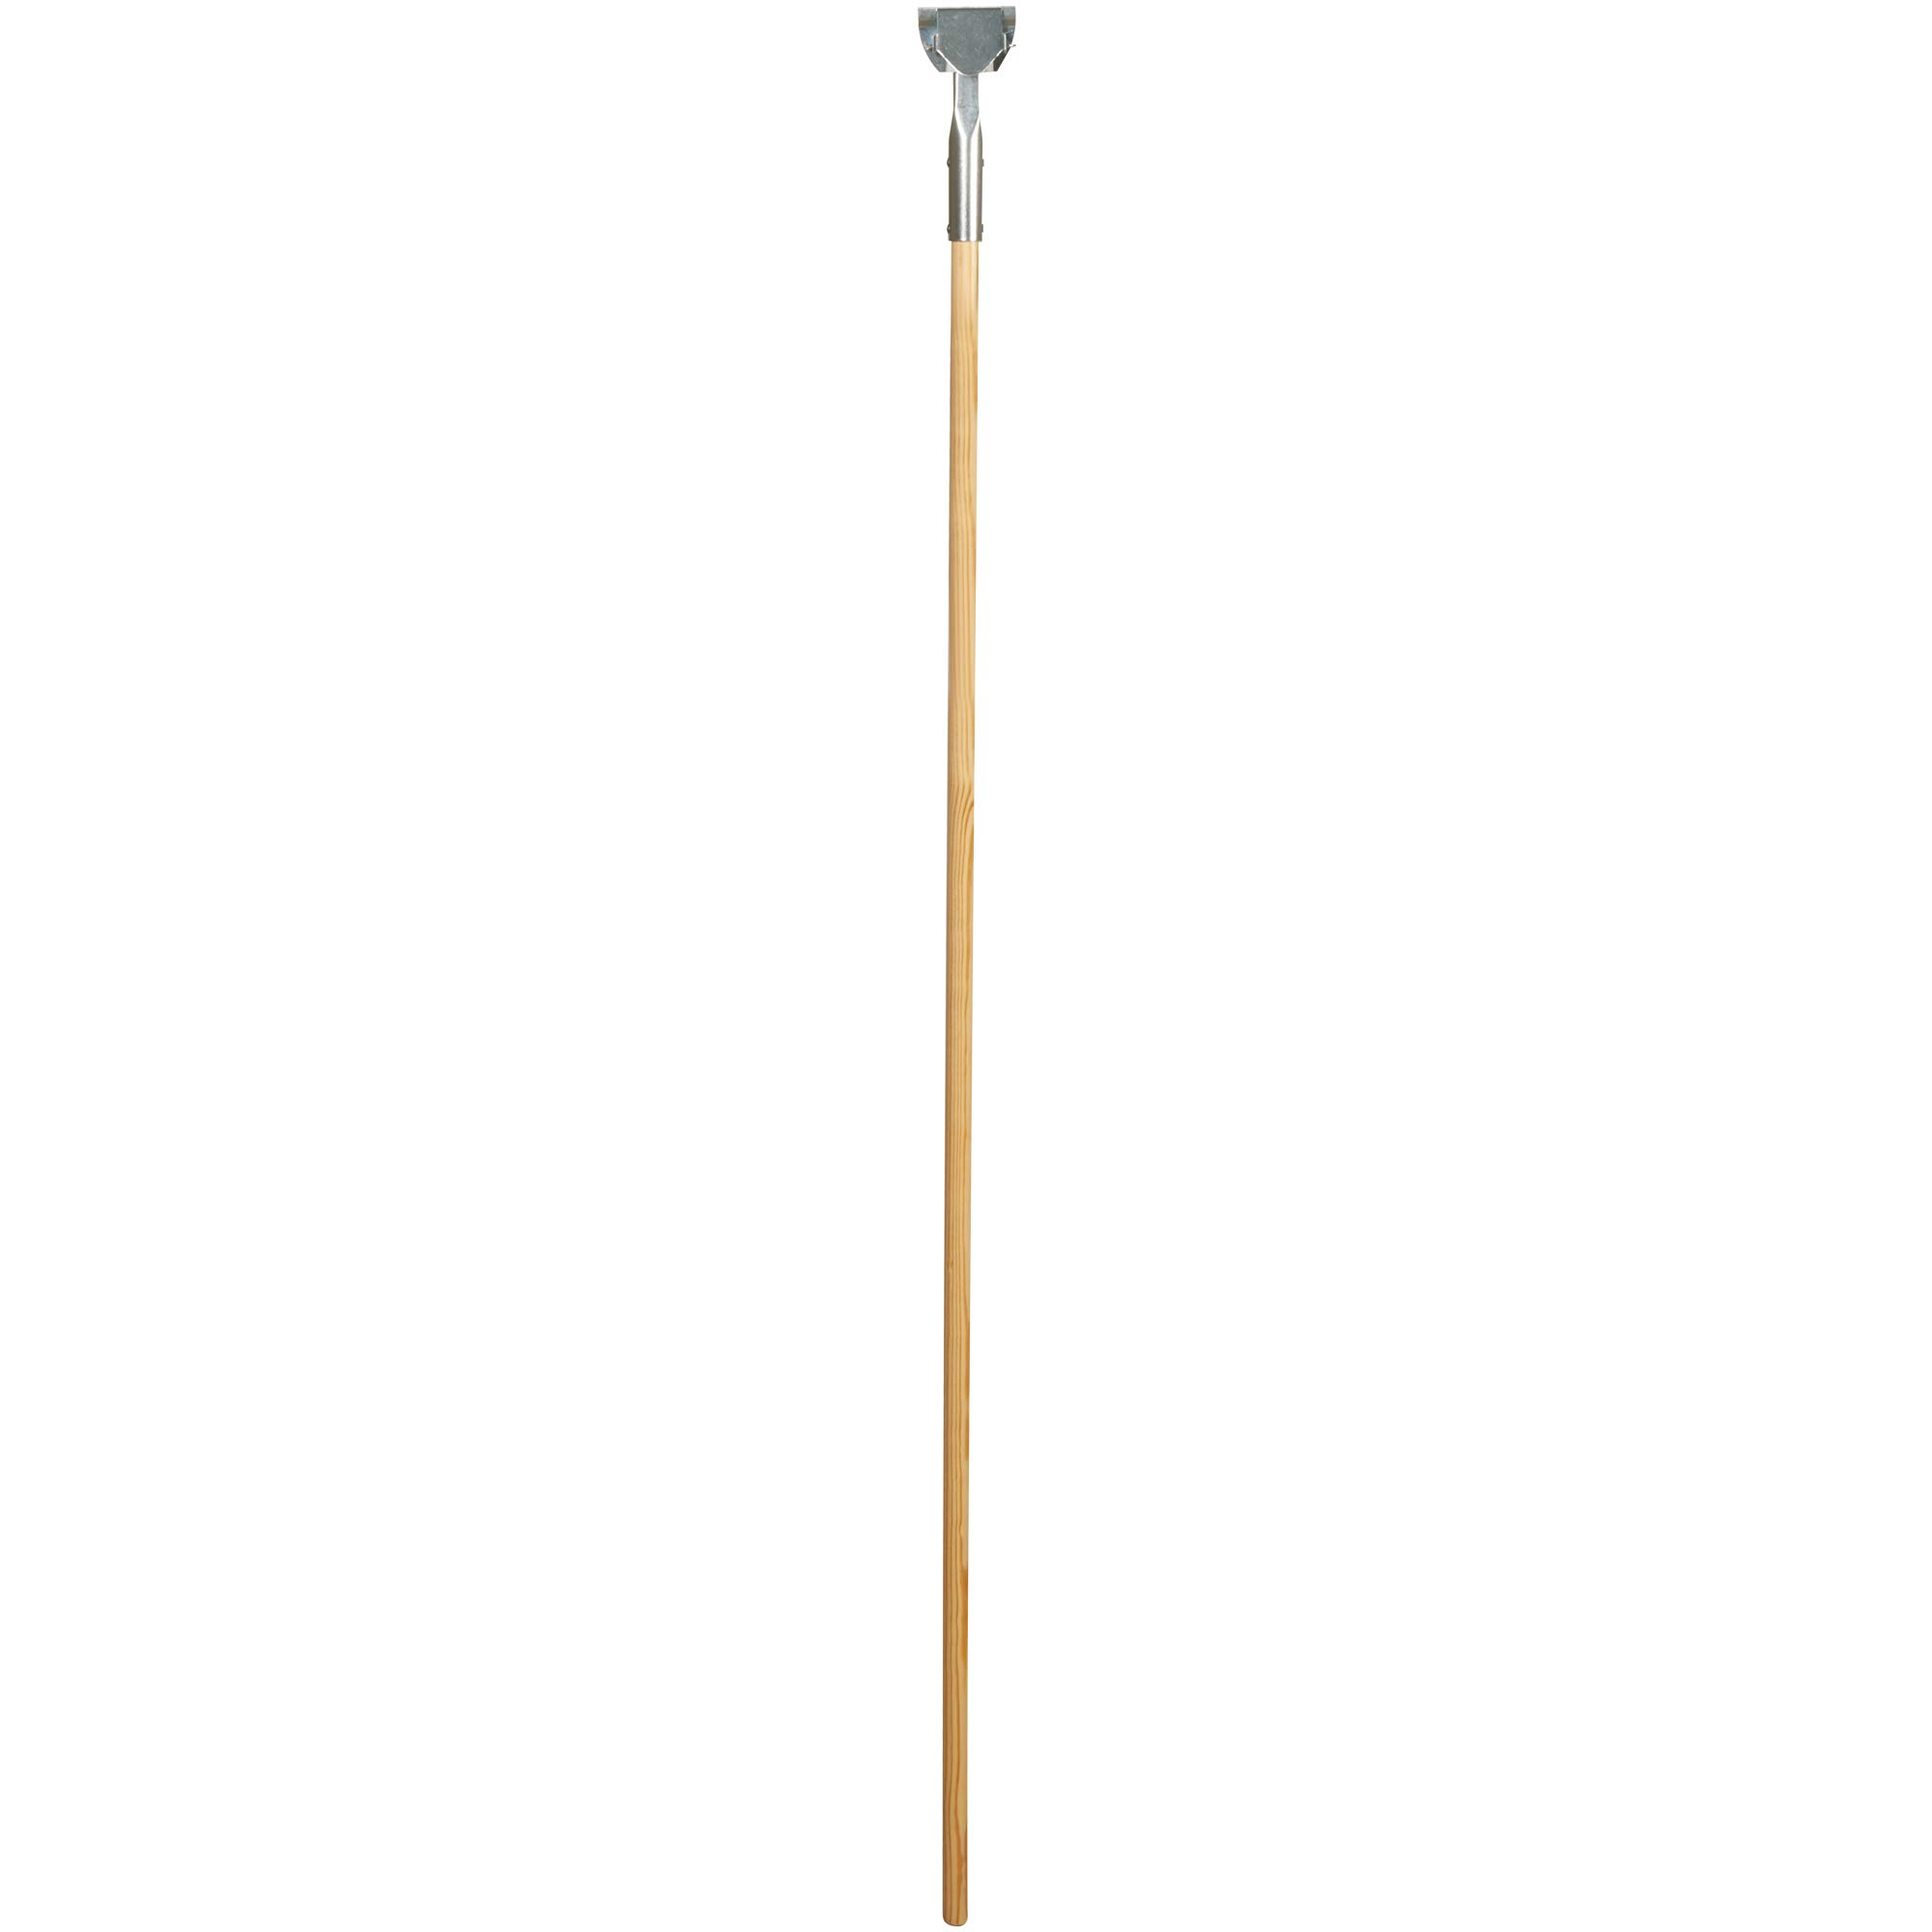 Clip-On Dust Mop Handle, 60'', Brown/Silver, 1/Each by Top Pack Supply